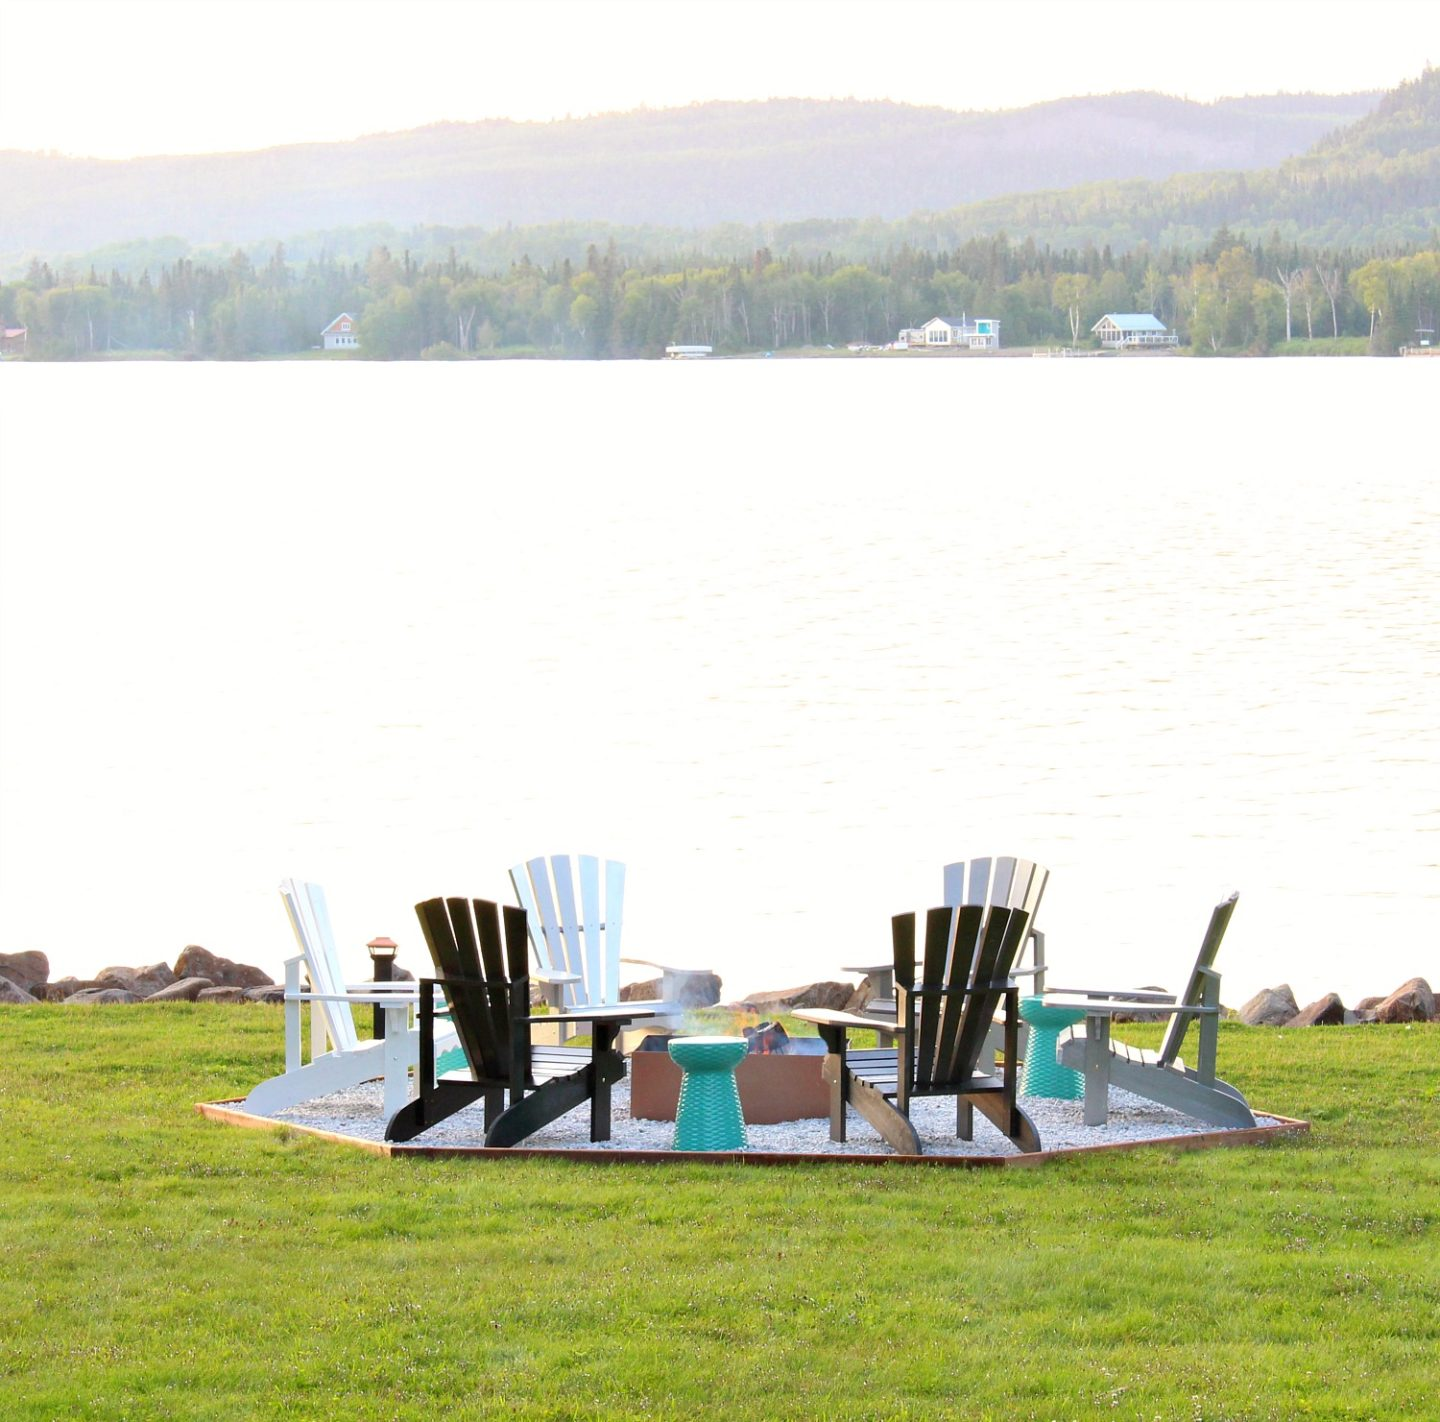 Fire Pit Makeover + DIY Ombre Adirondack Chairs (Sponsored by The Home Depot Canada)